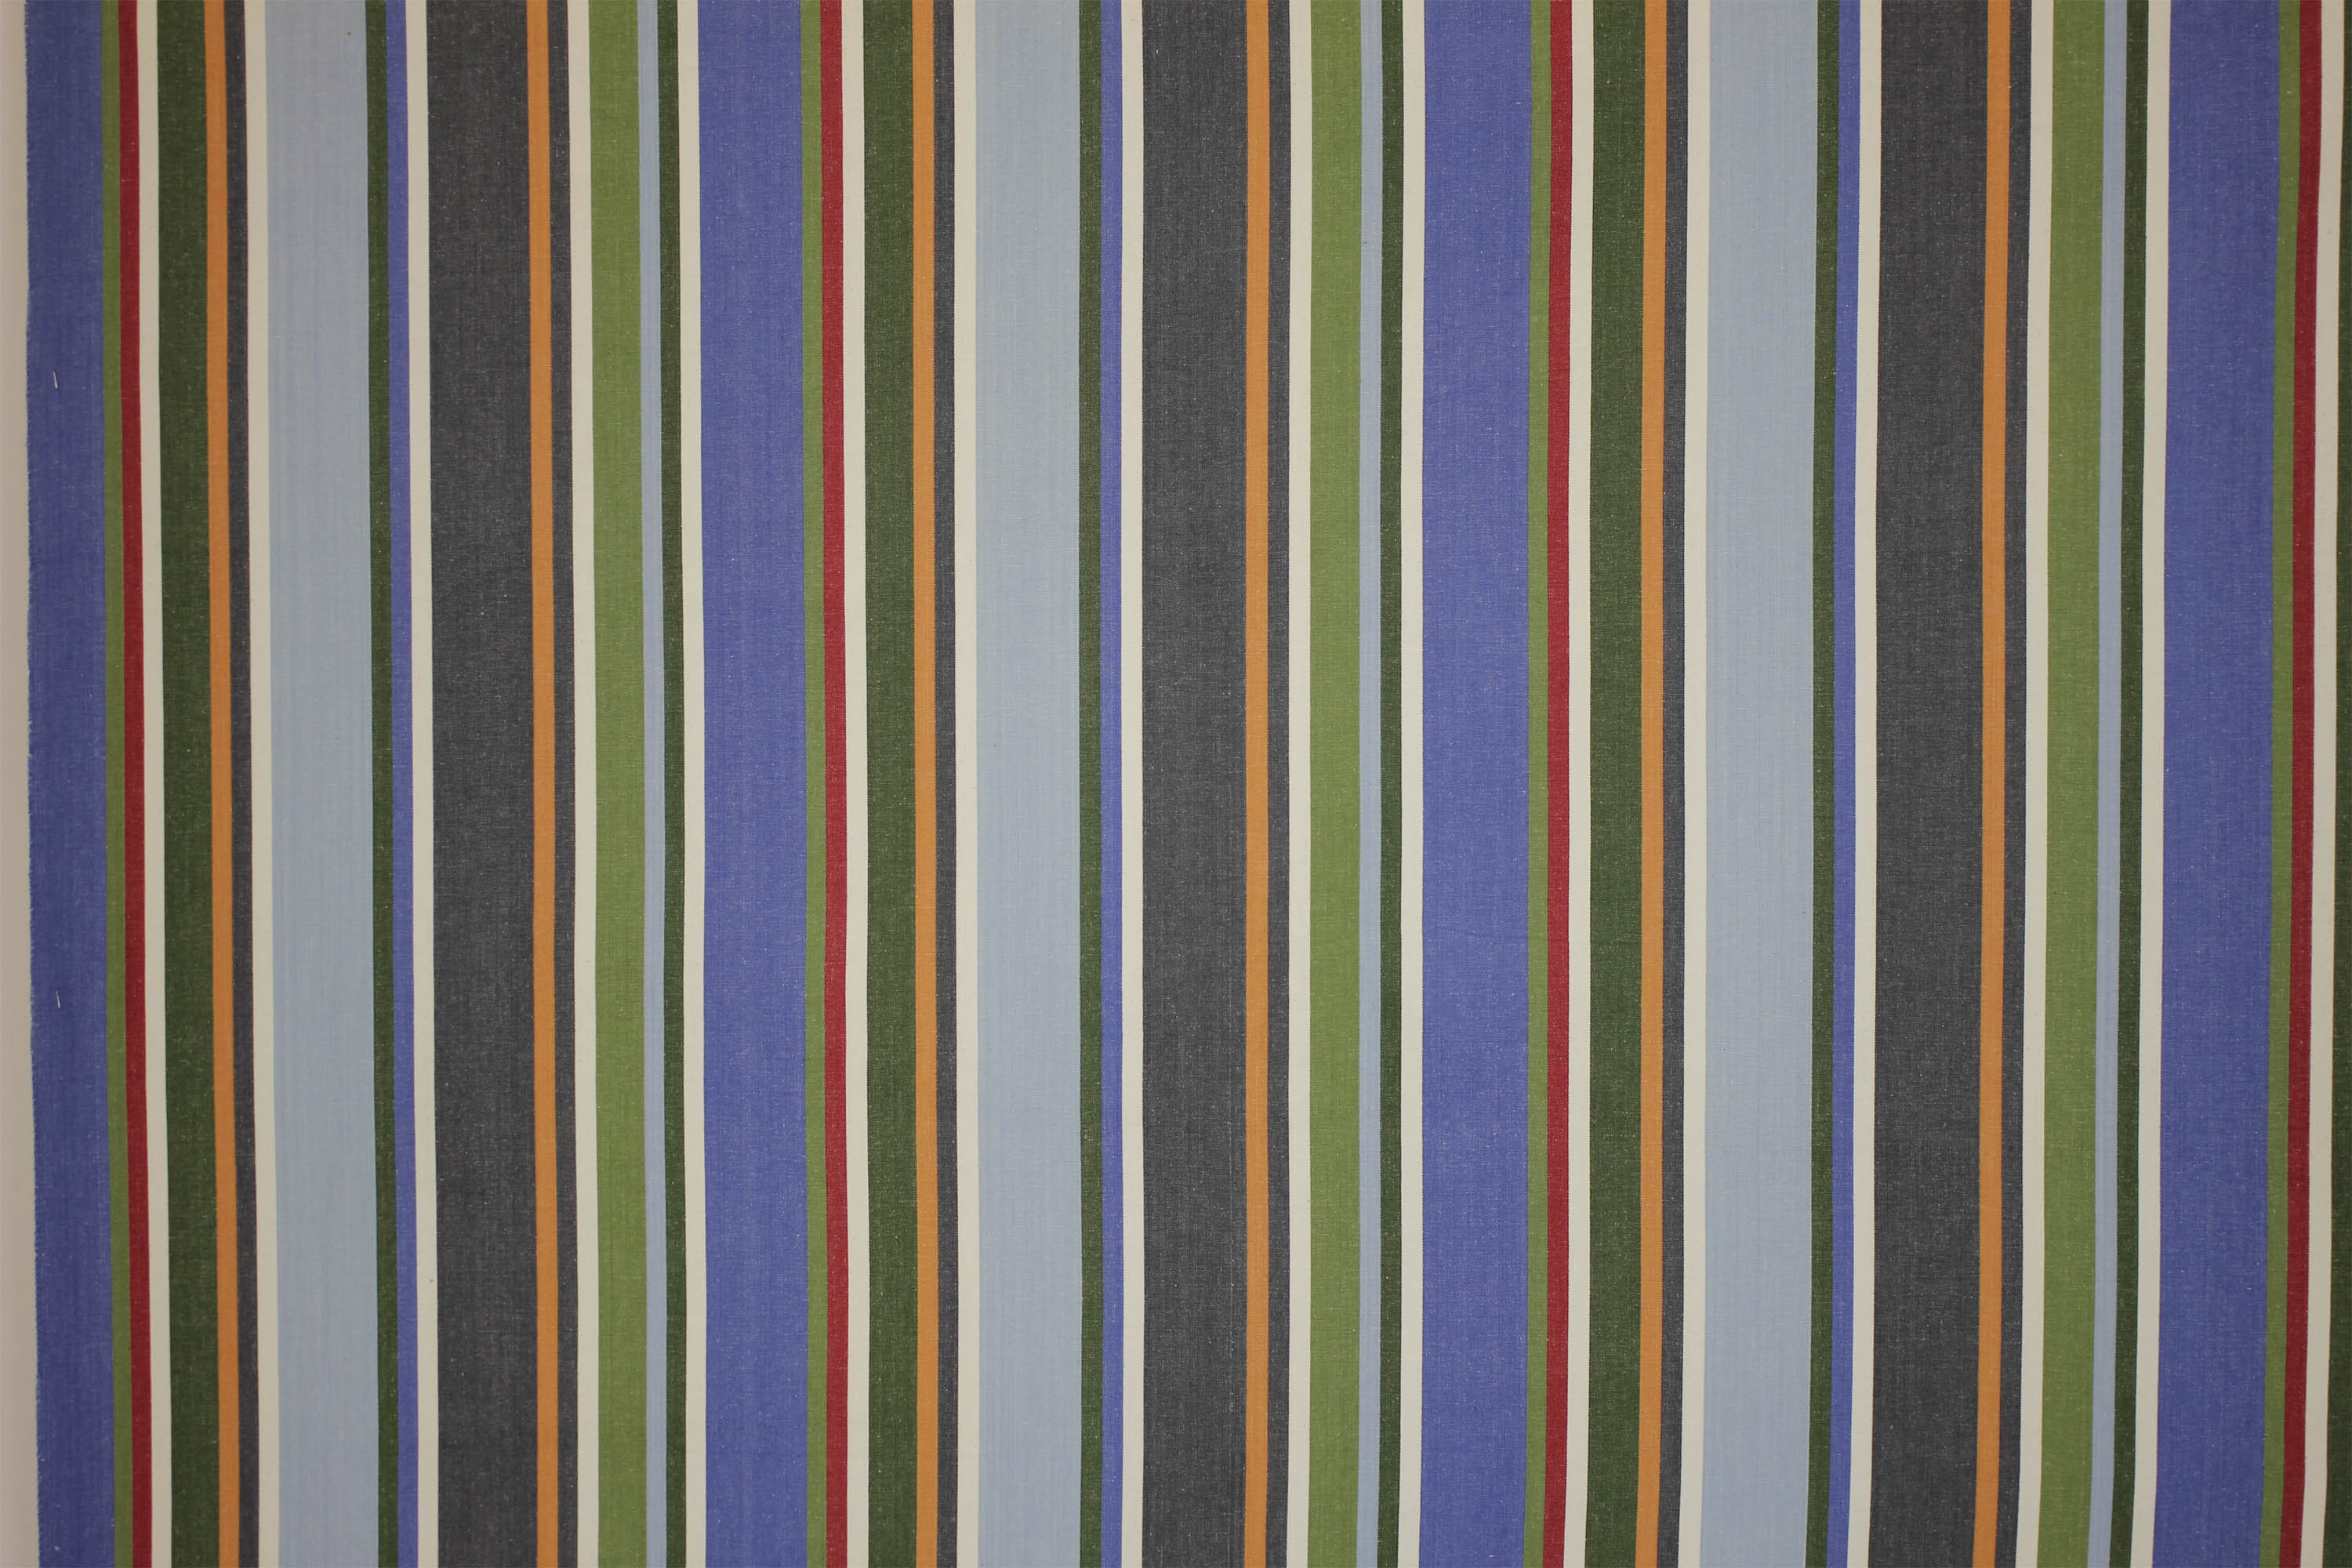 Blue Striped Fabrics | Stripe Cotton Fabrics | Striped Curtain Fabrics | Upholstery Fabrics  Decathlon Stripes